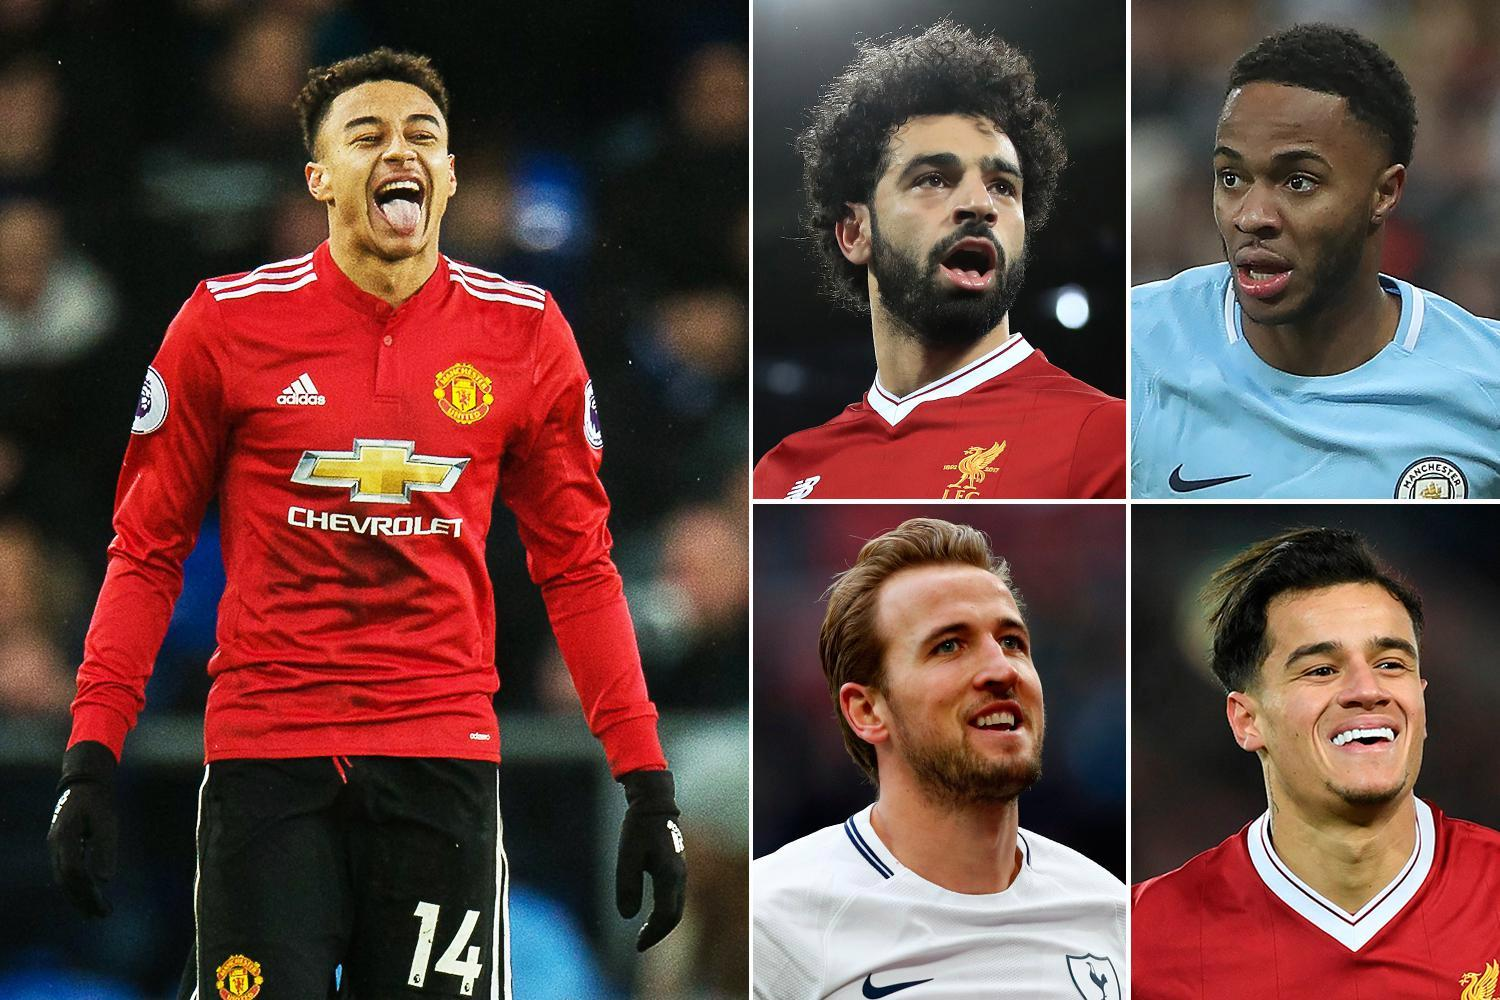 Manchester United star Jesse Lingard is a more effective attacker than Harry Kane, based on minutes per goal involvement